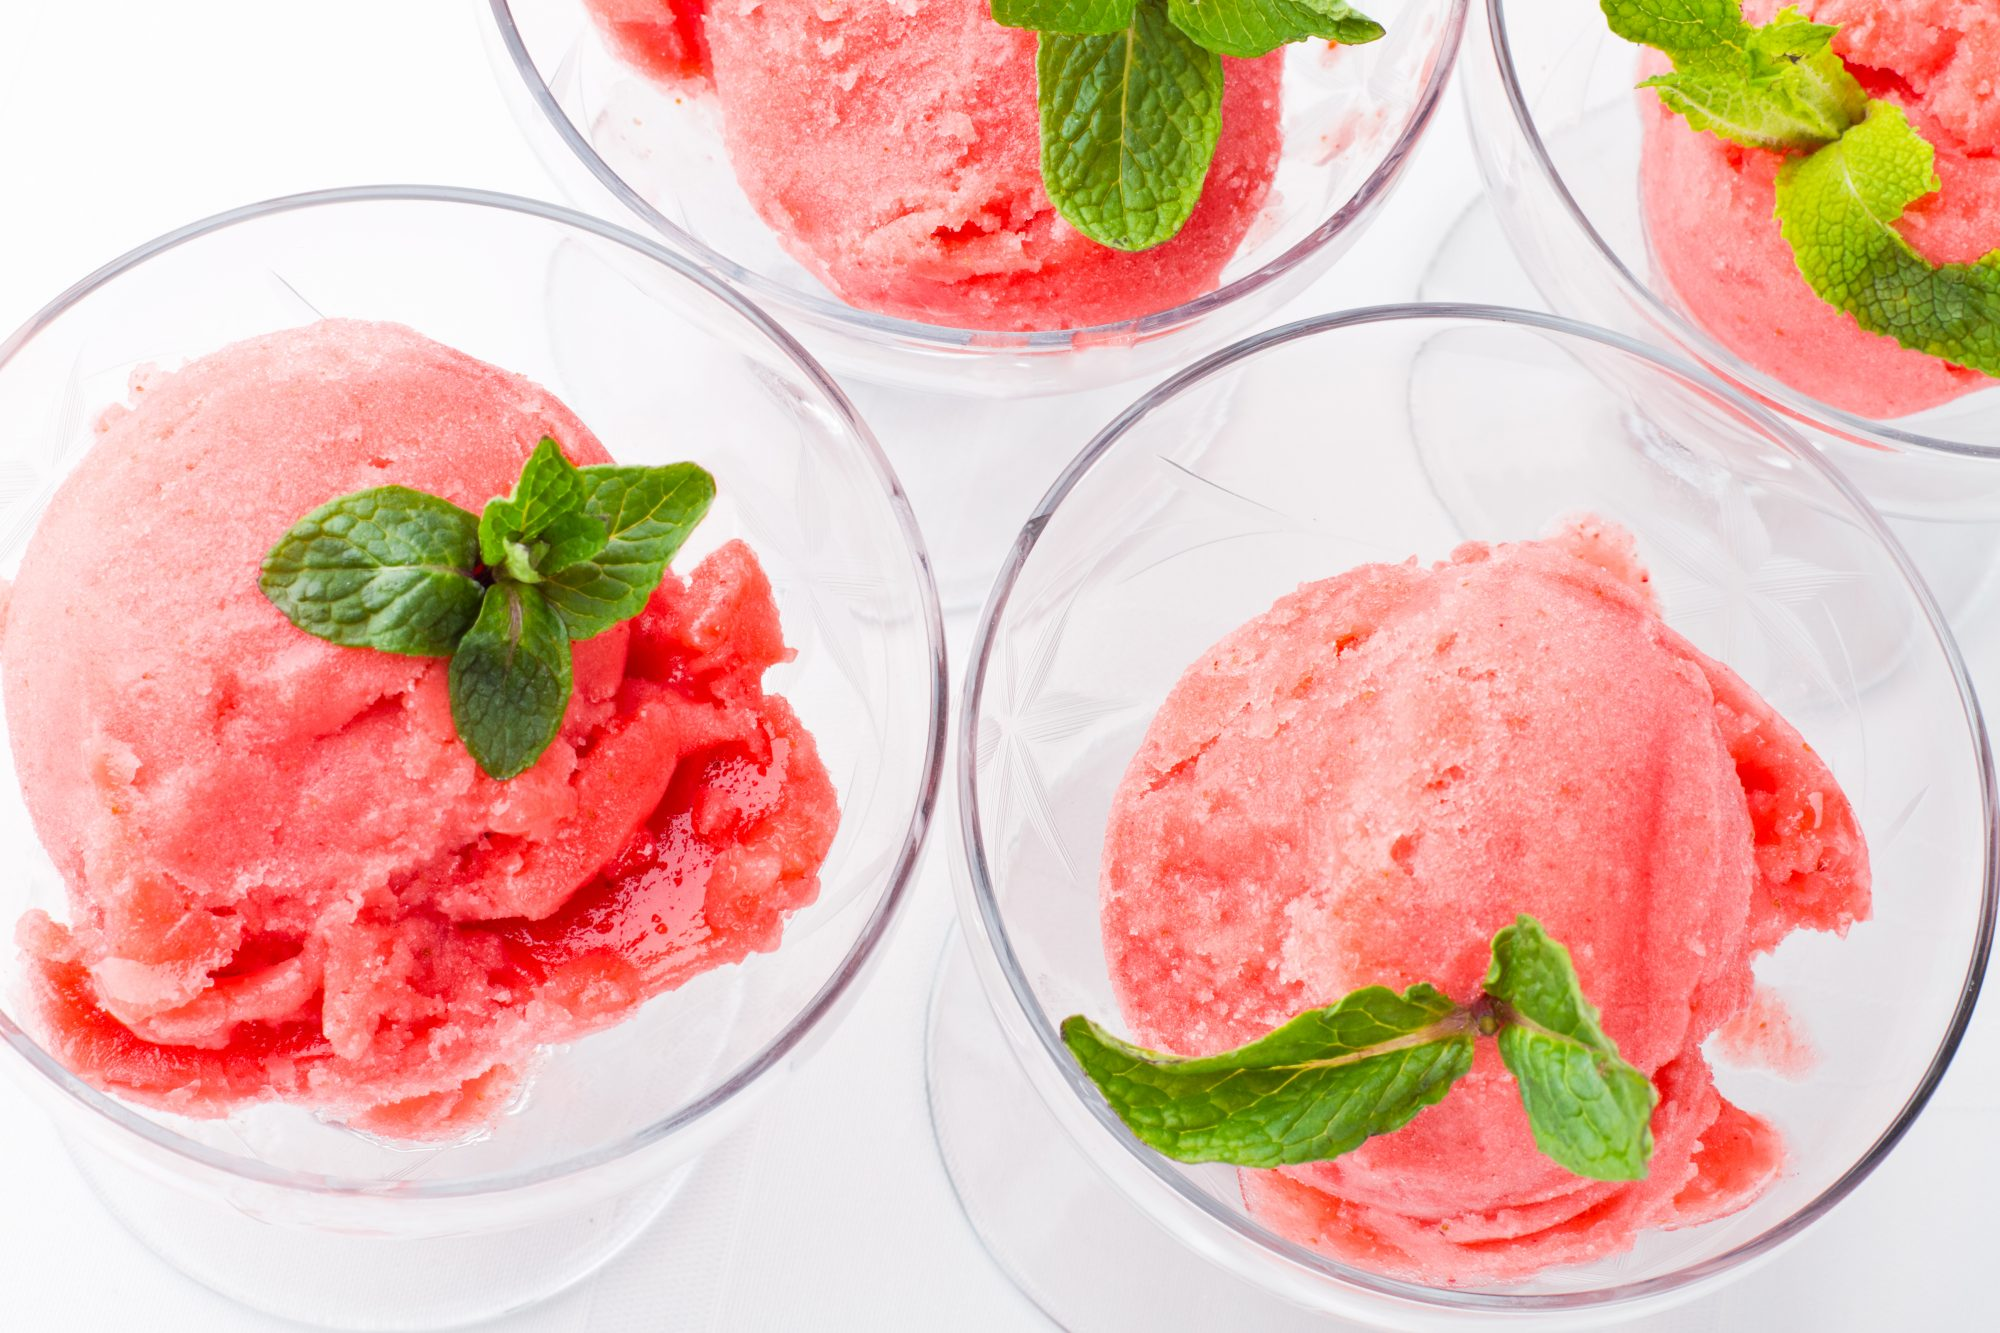 Raspberry sorbet scooped into glasses and topped with fresh mint